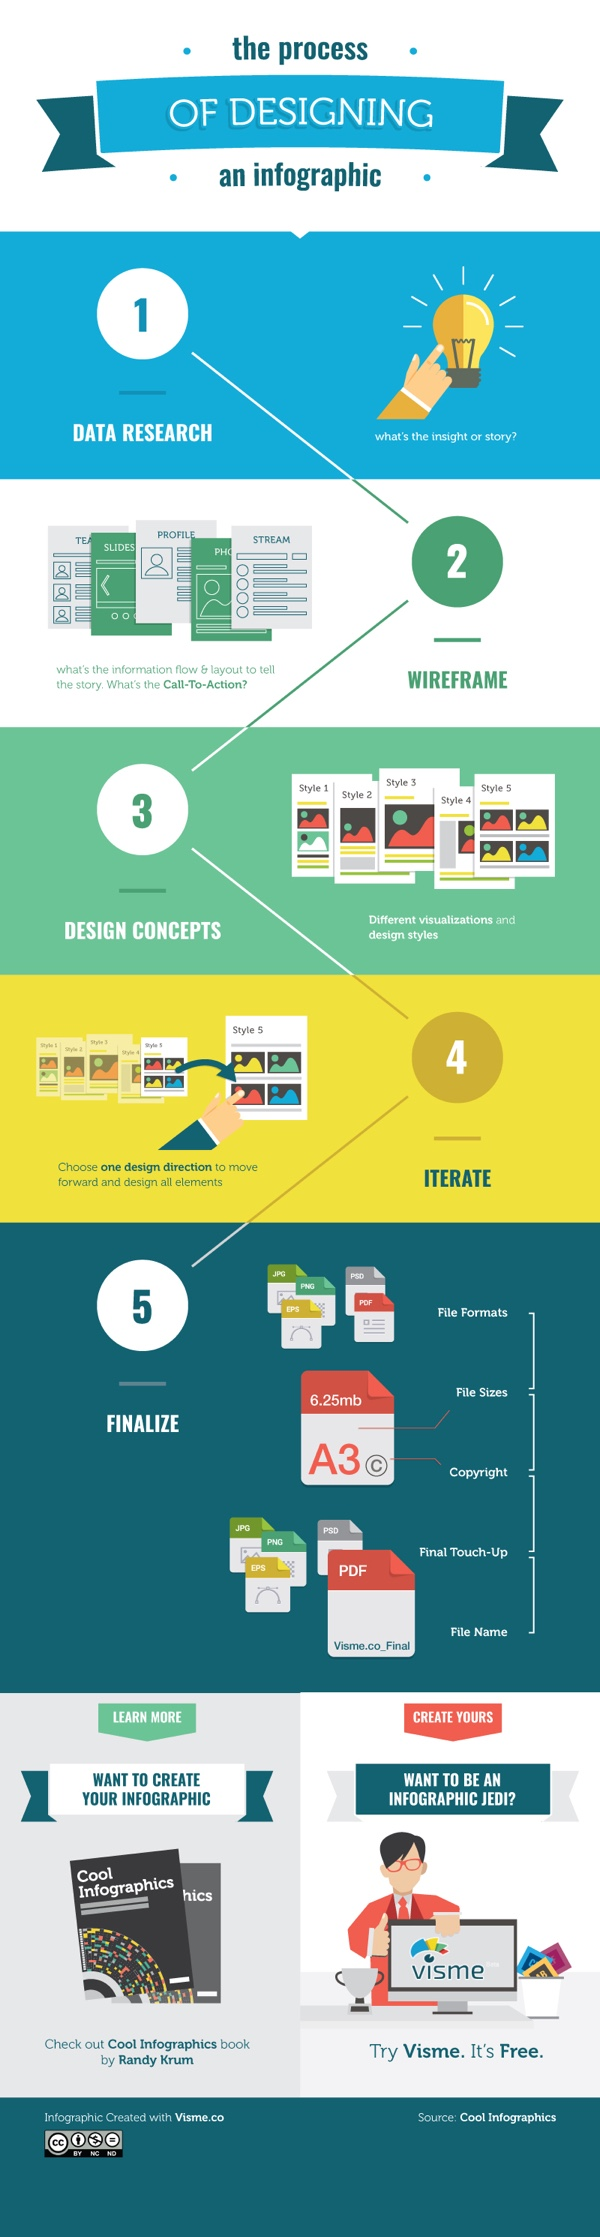 The Process of Designing an Infographic by InfoNewt